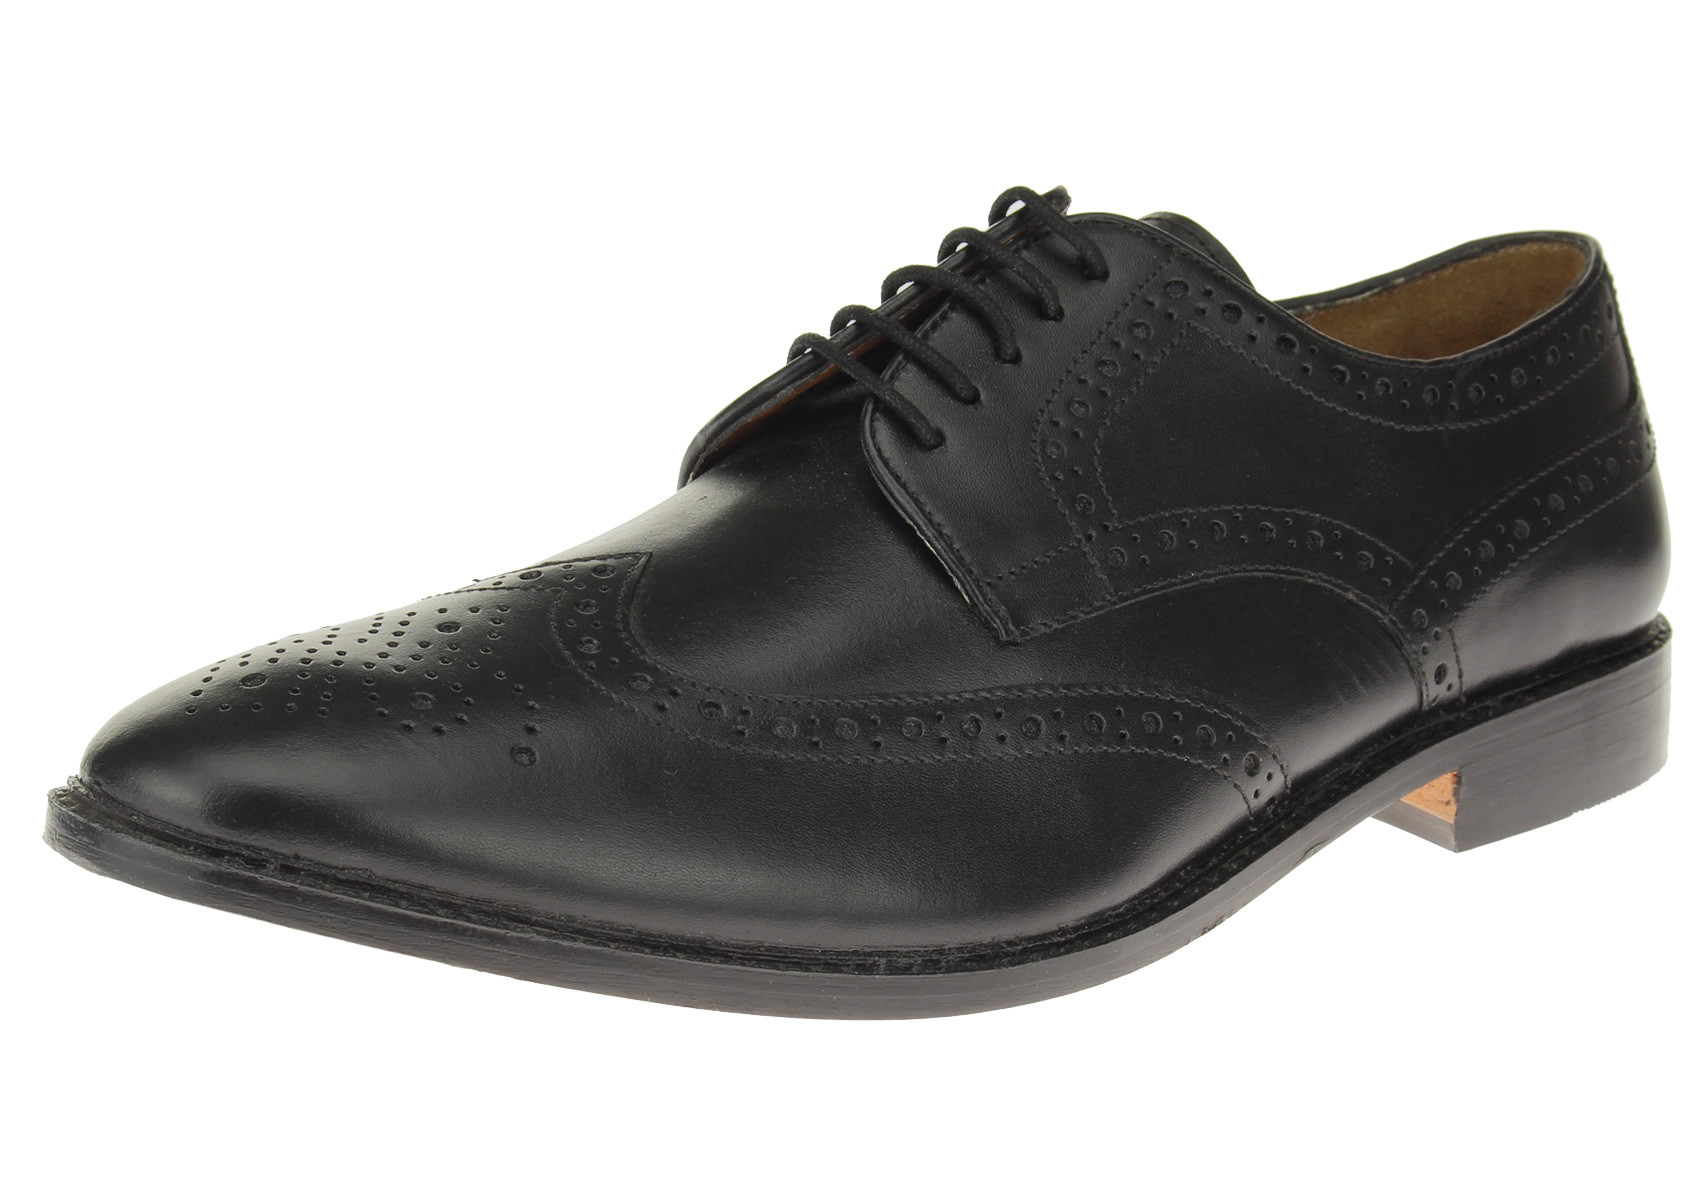 Luciano Natazzi Mens Full Leather Wingtip Oxford Lace-Up Dress Shoe SL301